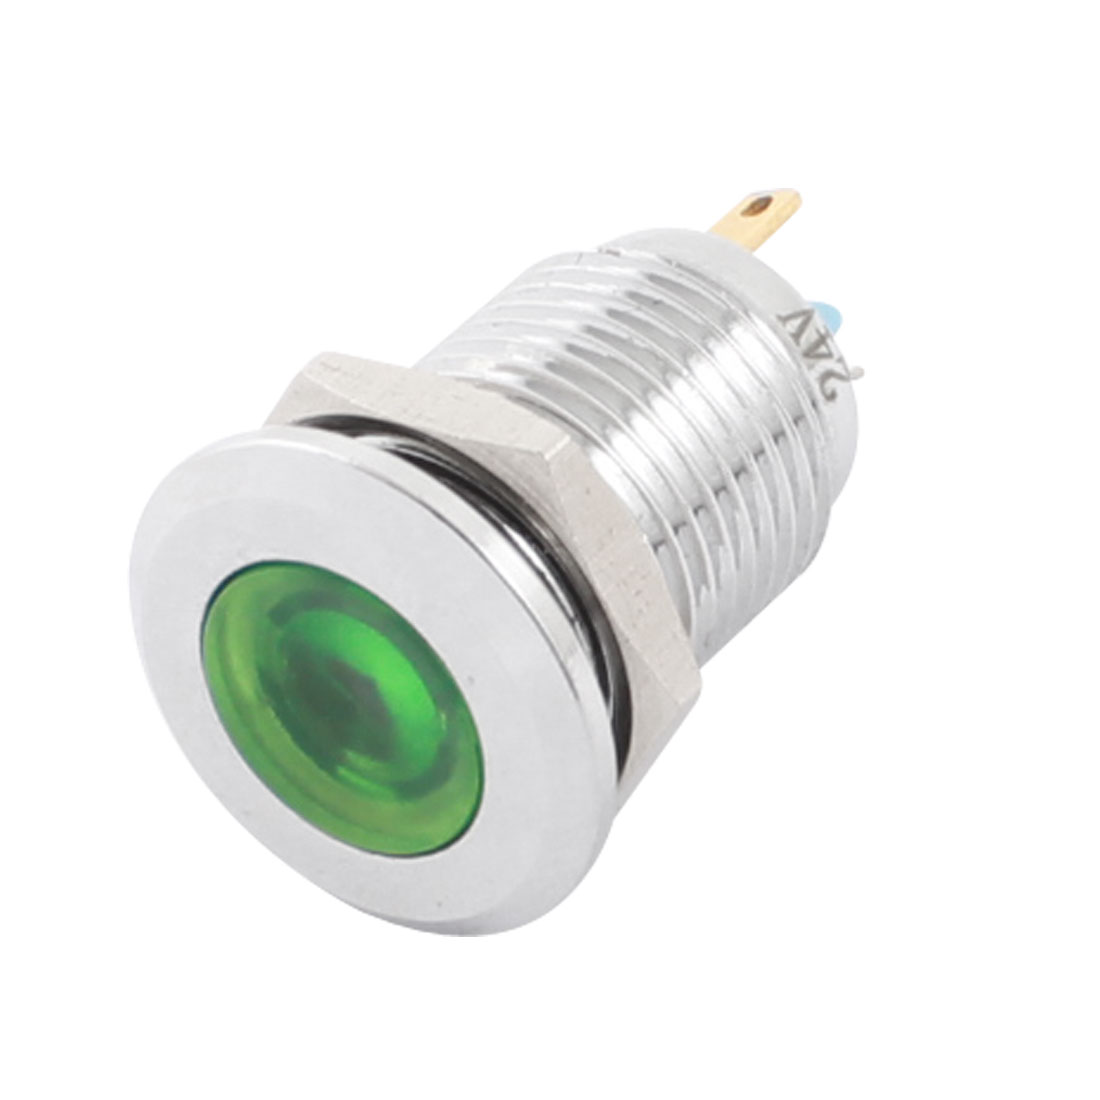 DC24V 12mm Dia Thread Panel Mount Stainless Steel Green LED Signal Indicator Light Pilot Lamp